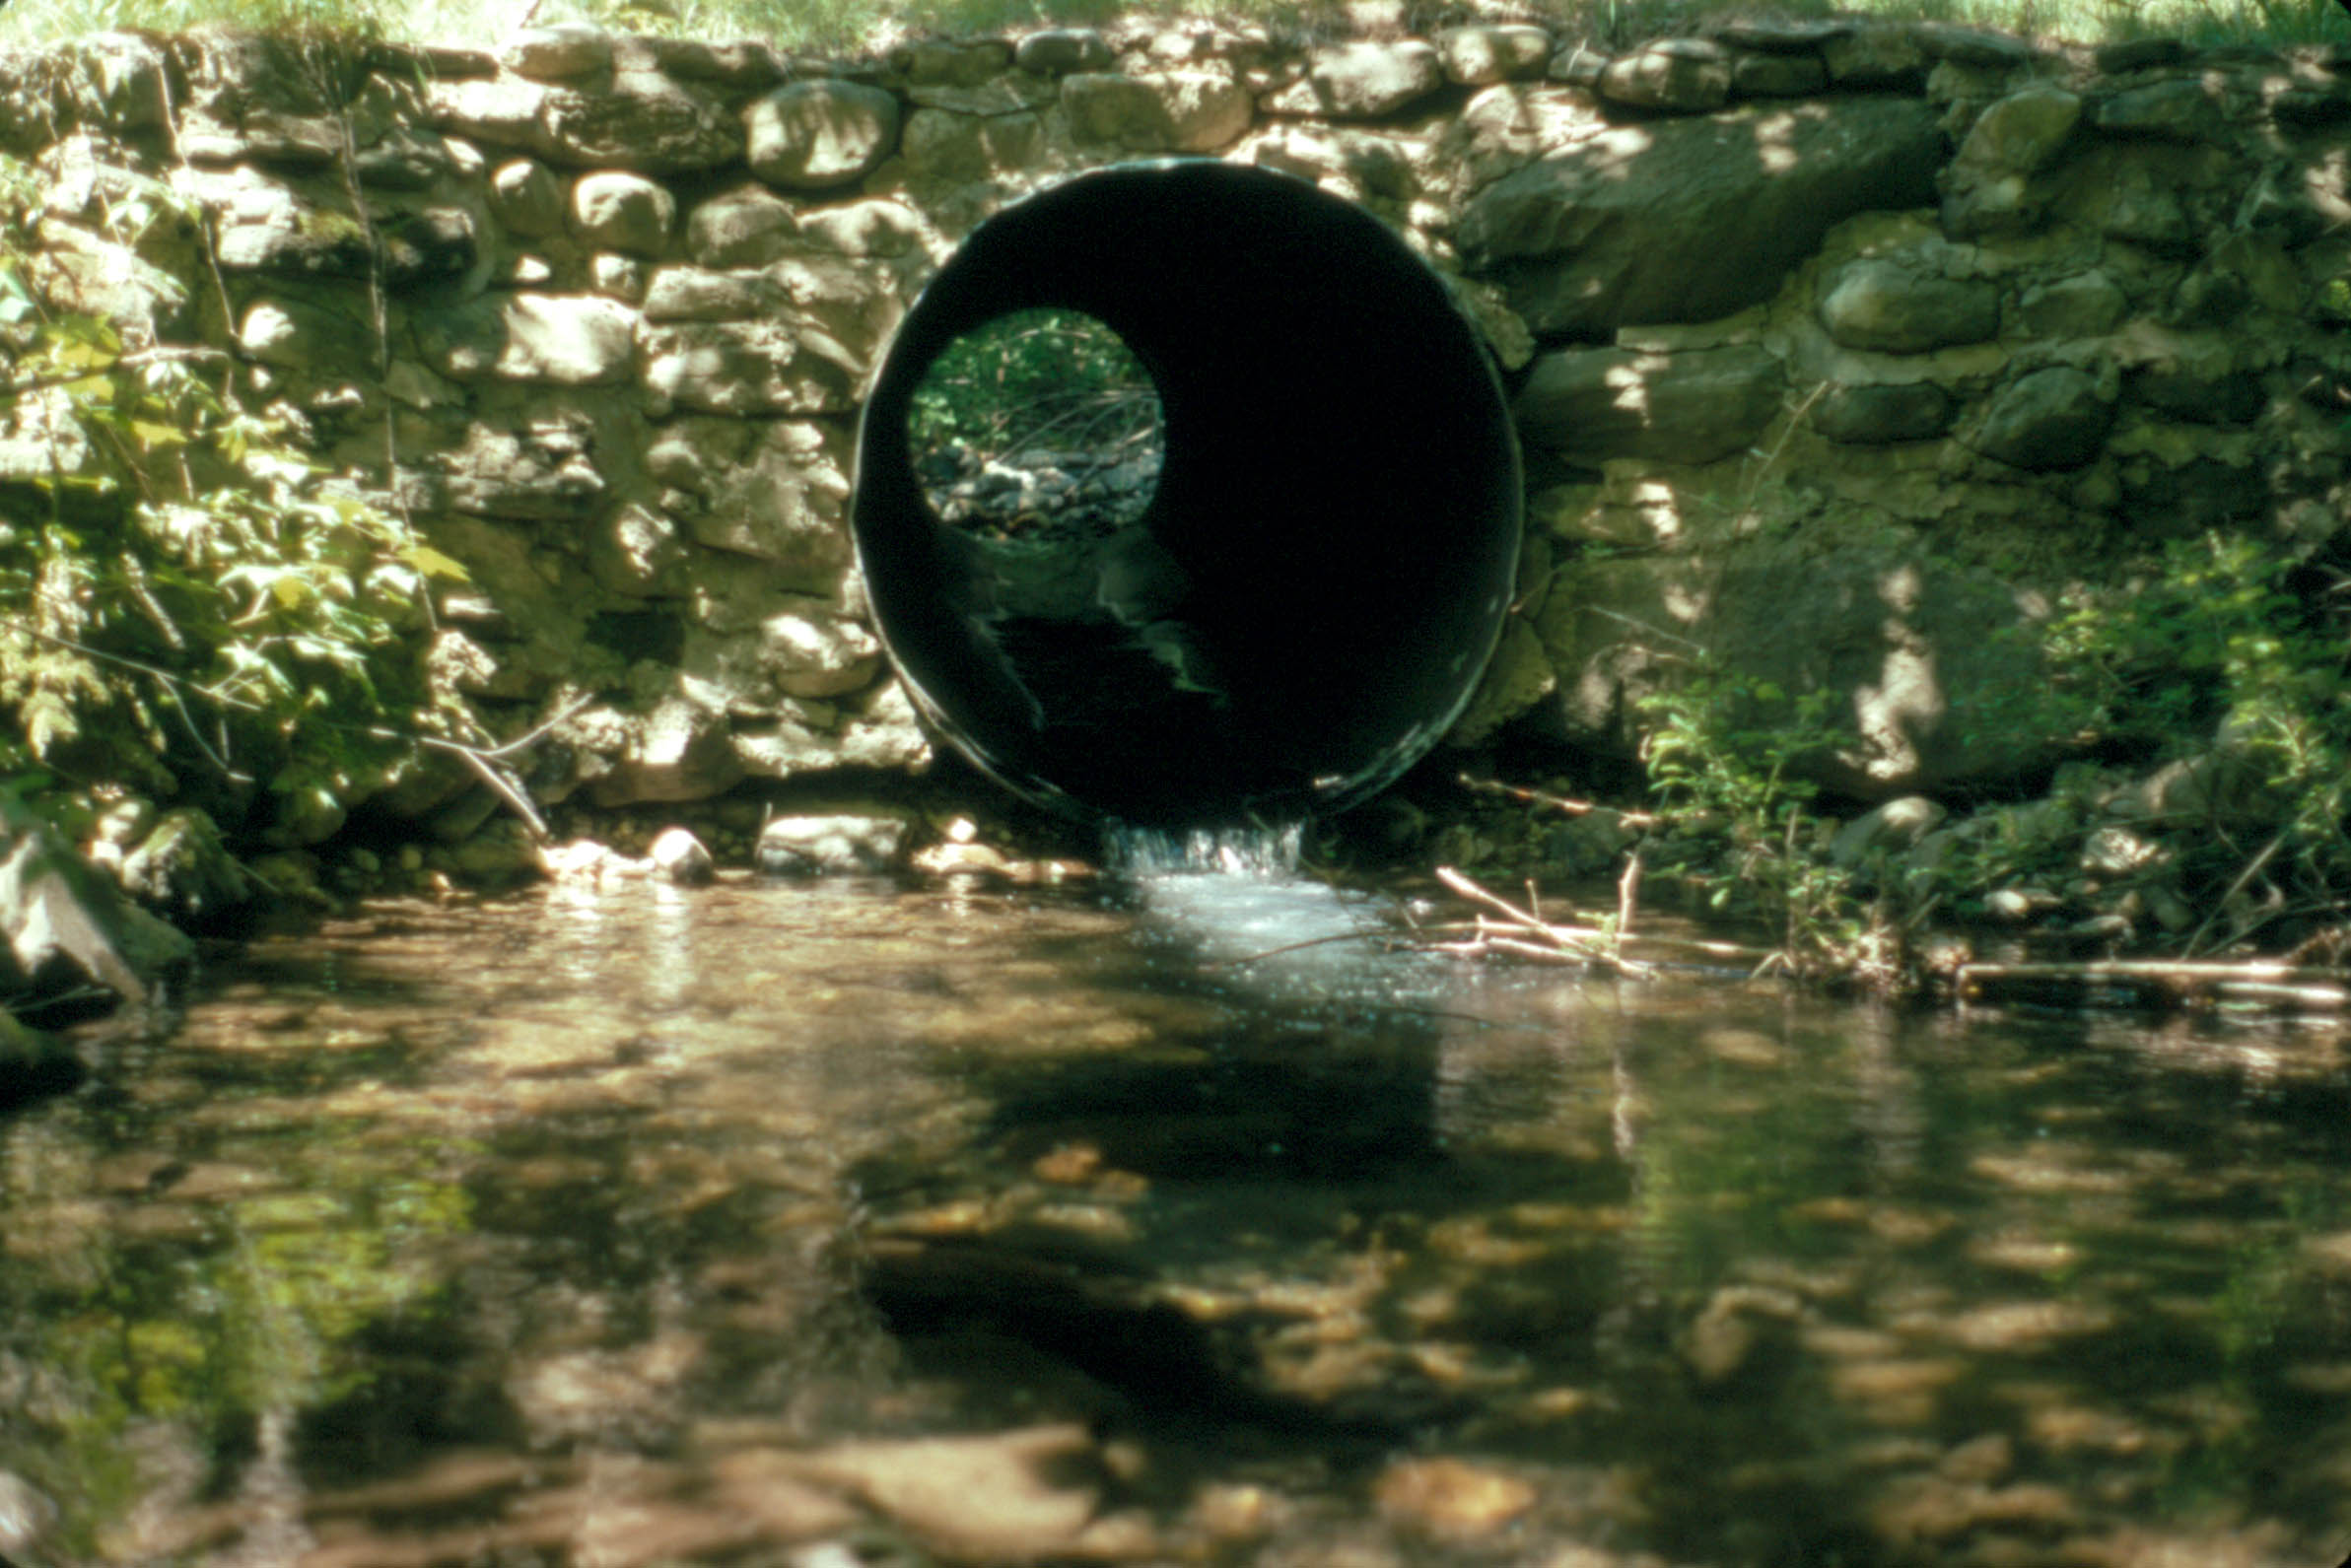 An example of a perched culvert that sits above water, making it more difficult for fish to swim upstream.